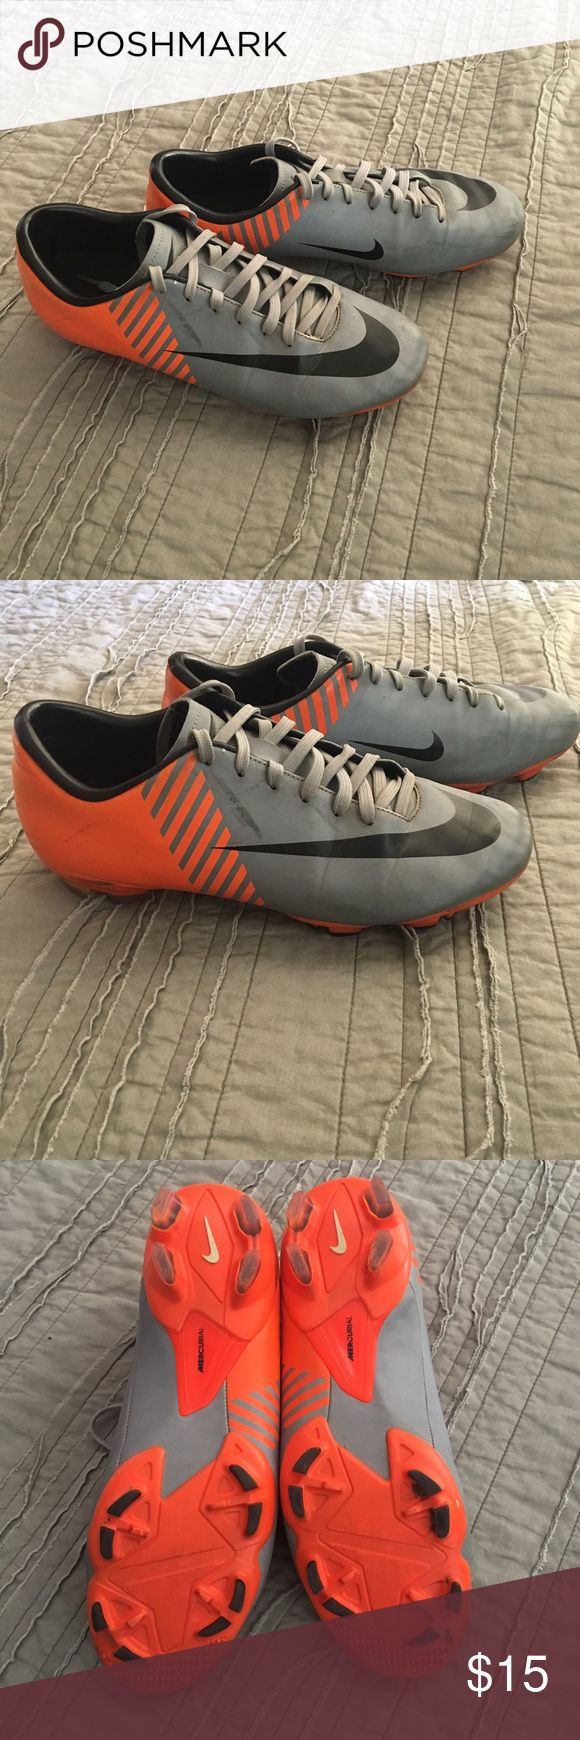 Nike Soccer Cleats Nike soccer cleats men size 7.5  Will clean before shipping. Used but still in great condition. Smoke free environment. Any questions please ask. First come first serve. Nike Shoes Athletic Shoes